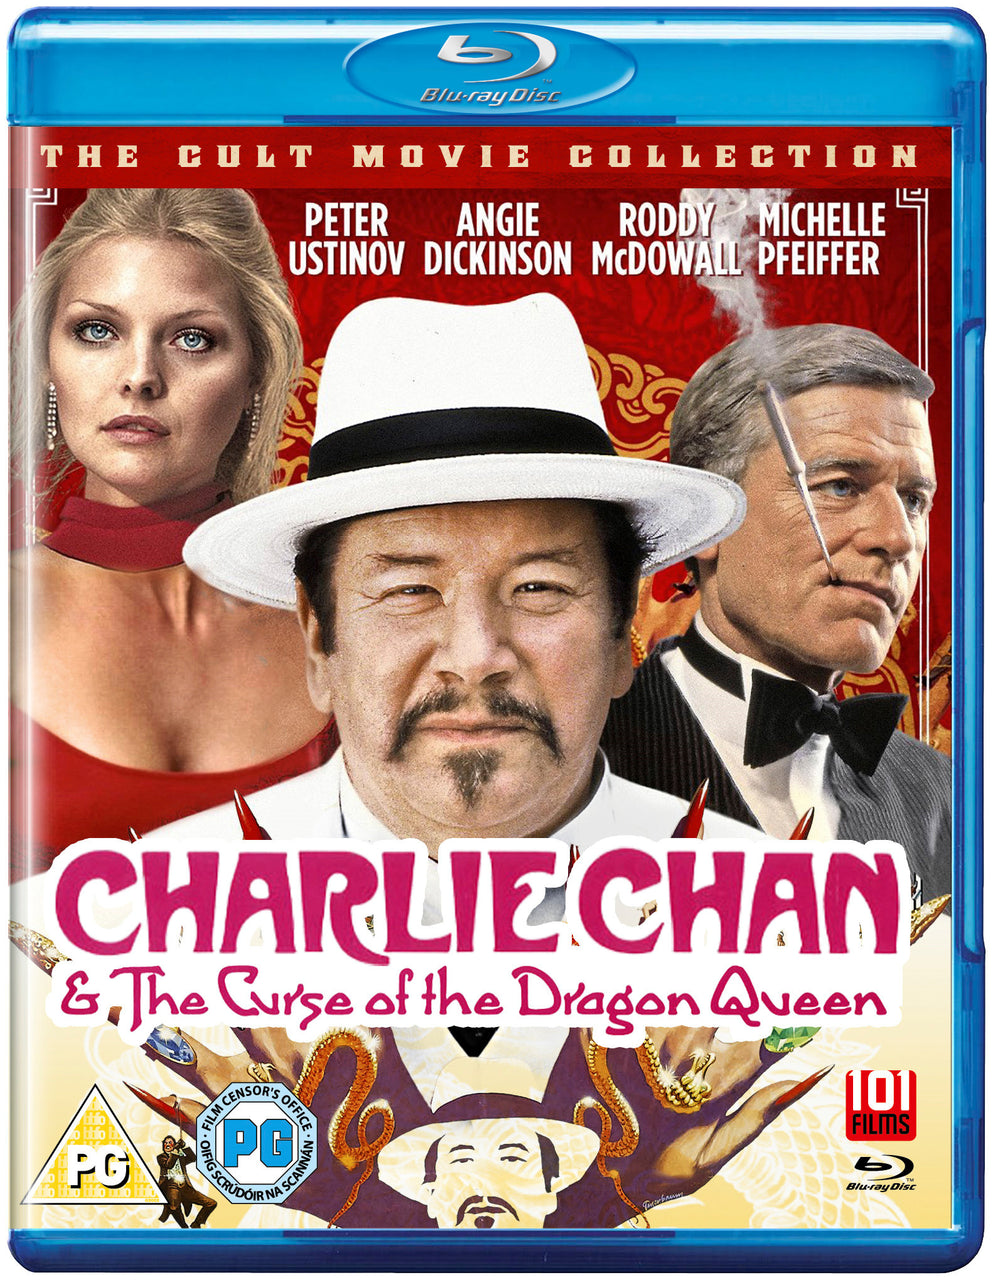 Charlie Chan & the Curse of the Dragon Queen (1981) (Blu-Ray)